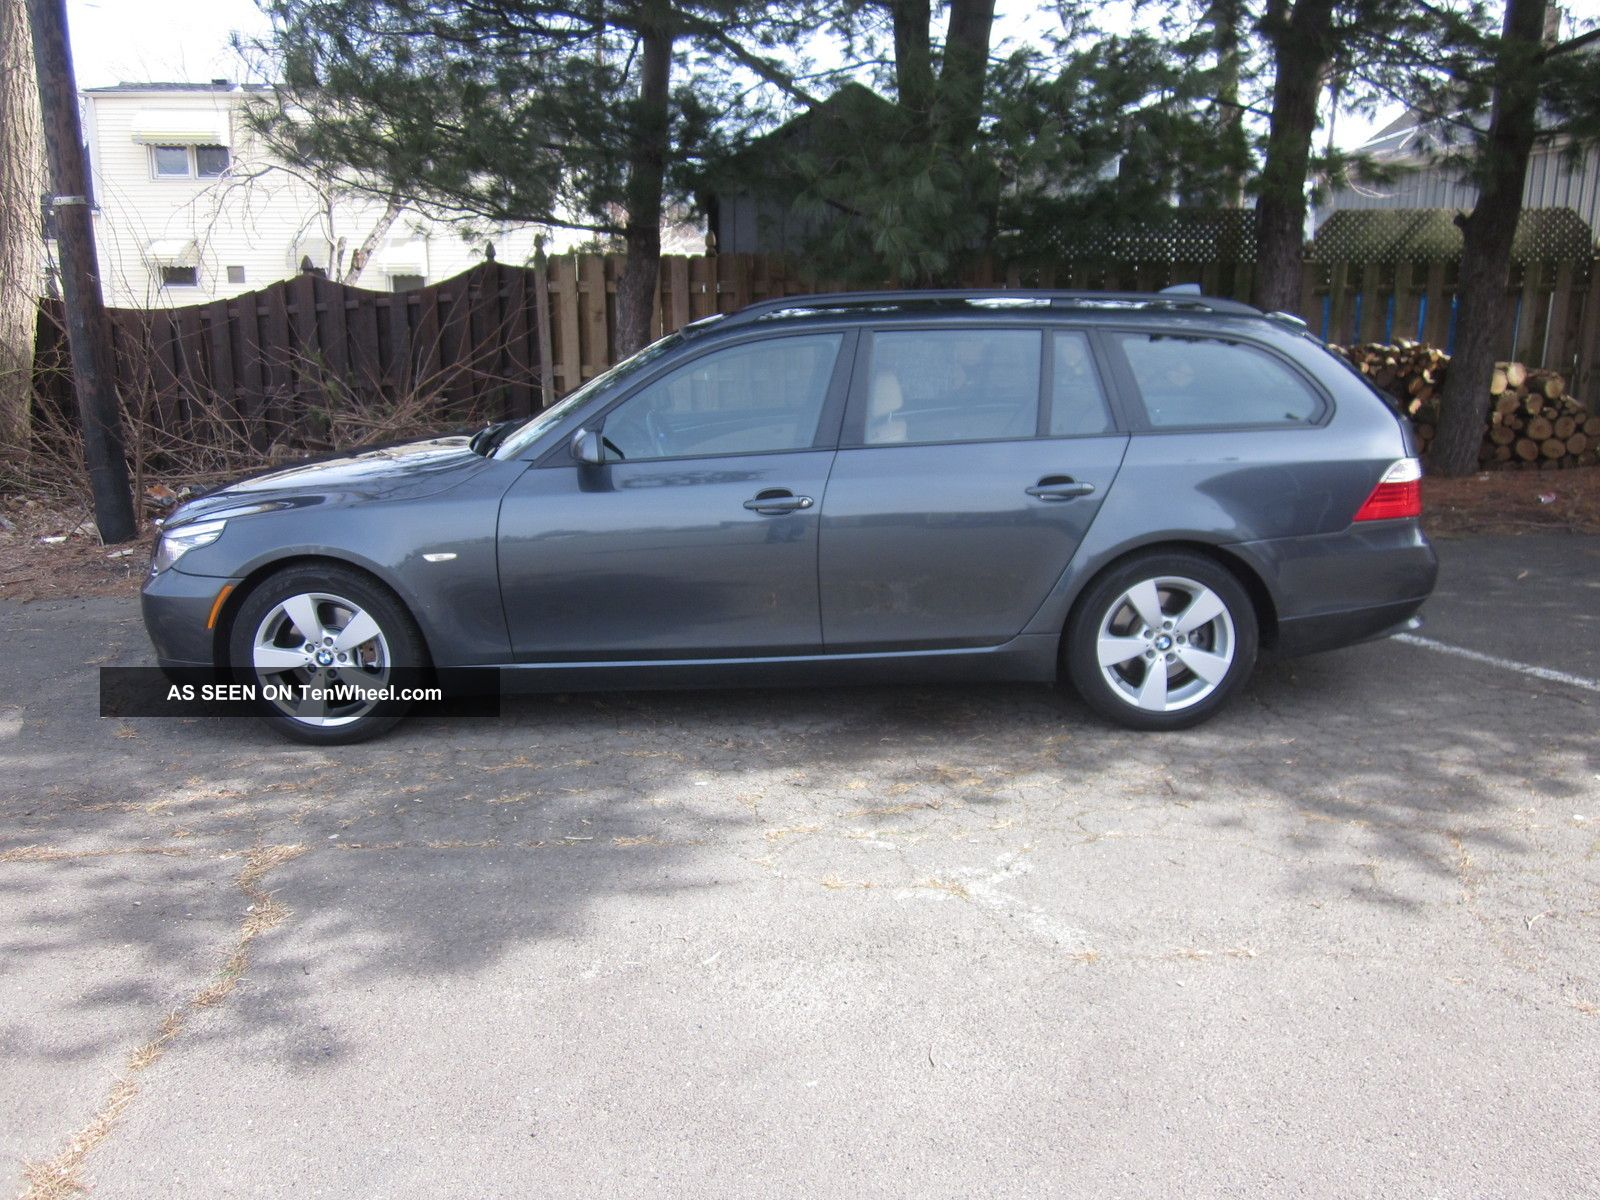 2008 535xi Auto Awd Lthr Moon Heat Cd Abs Sport Package Fully Loaded 5-Series photo